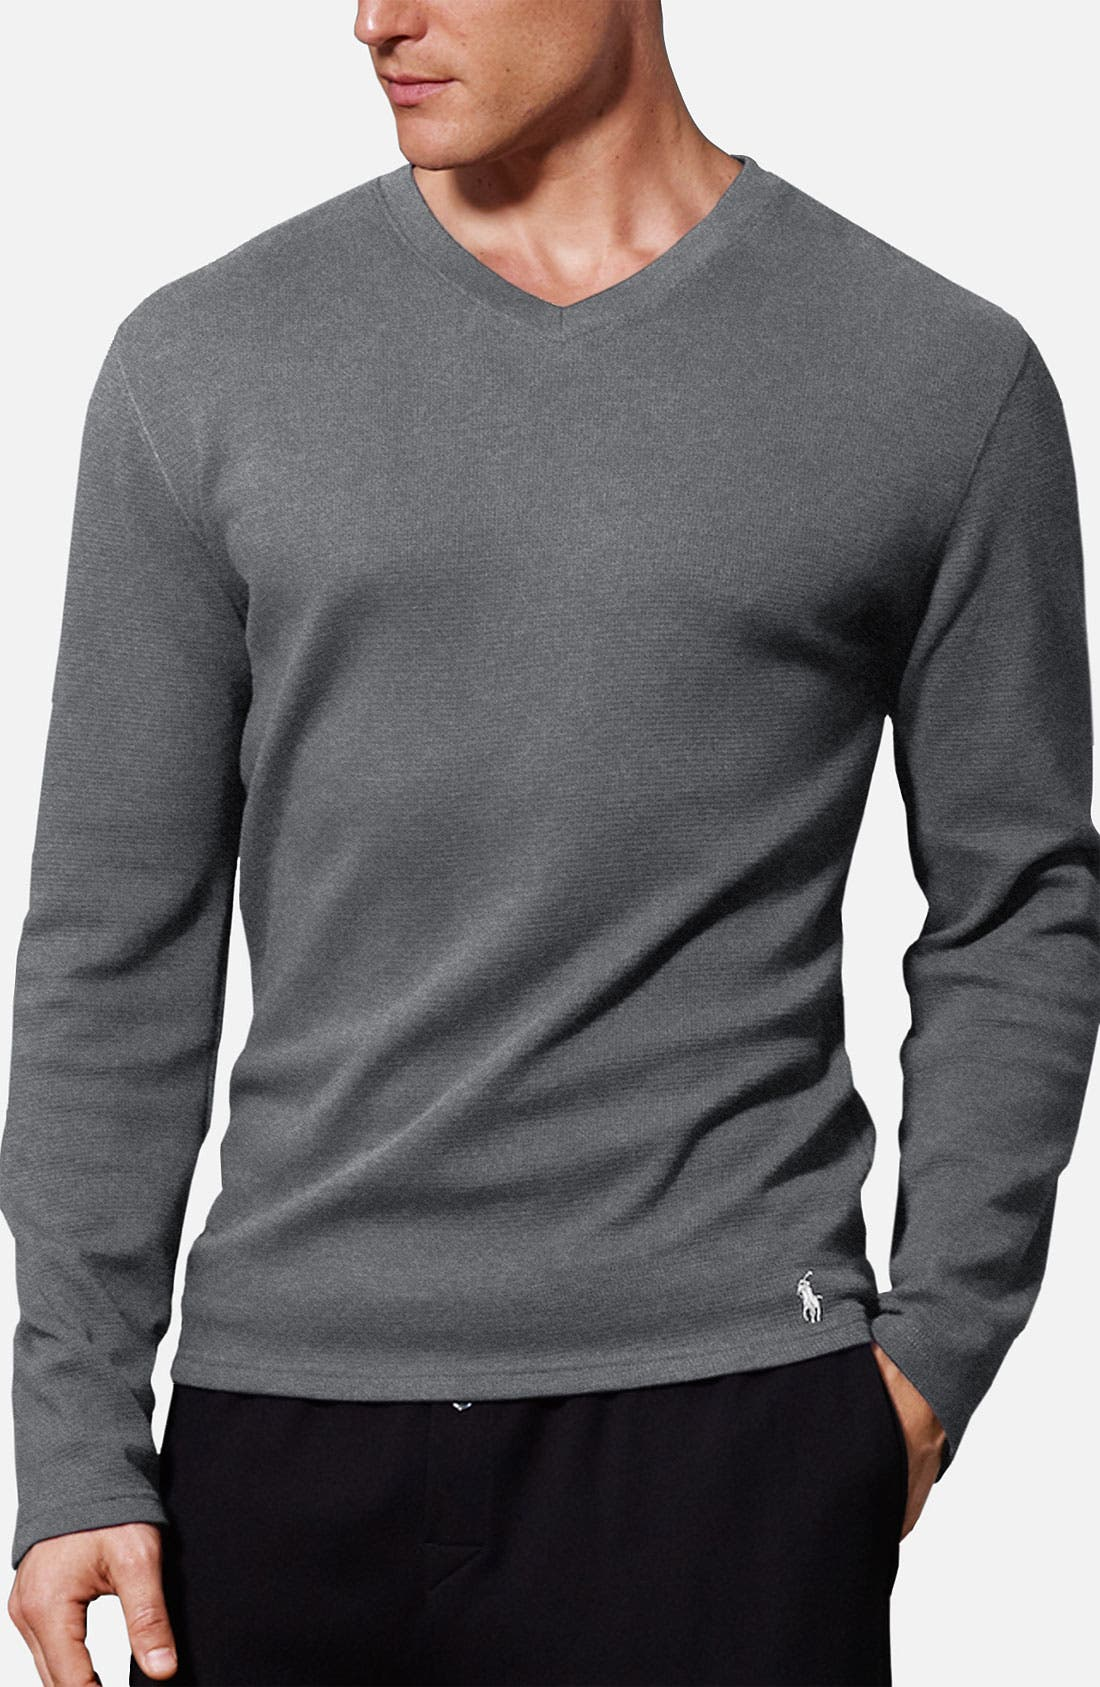 Main Image - Polo Ralph Lauren Long Sleeve Thermal T-Shirt